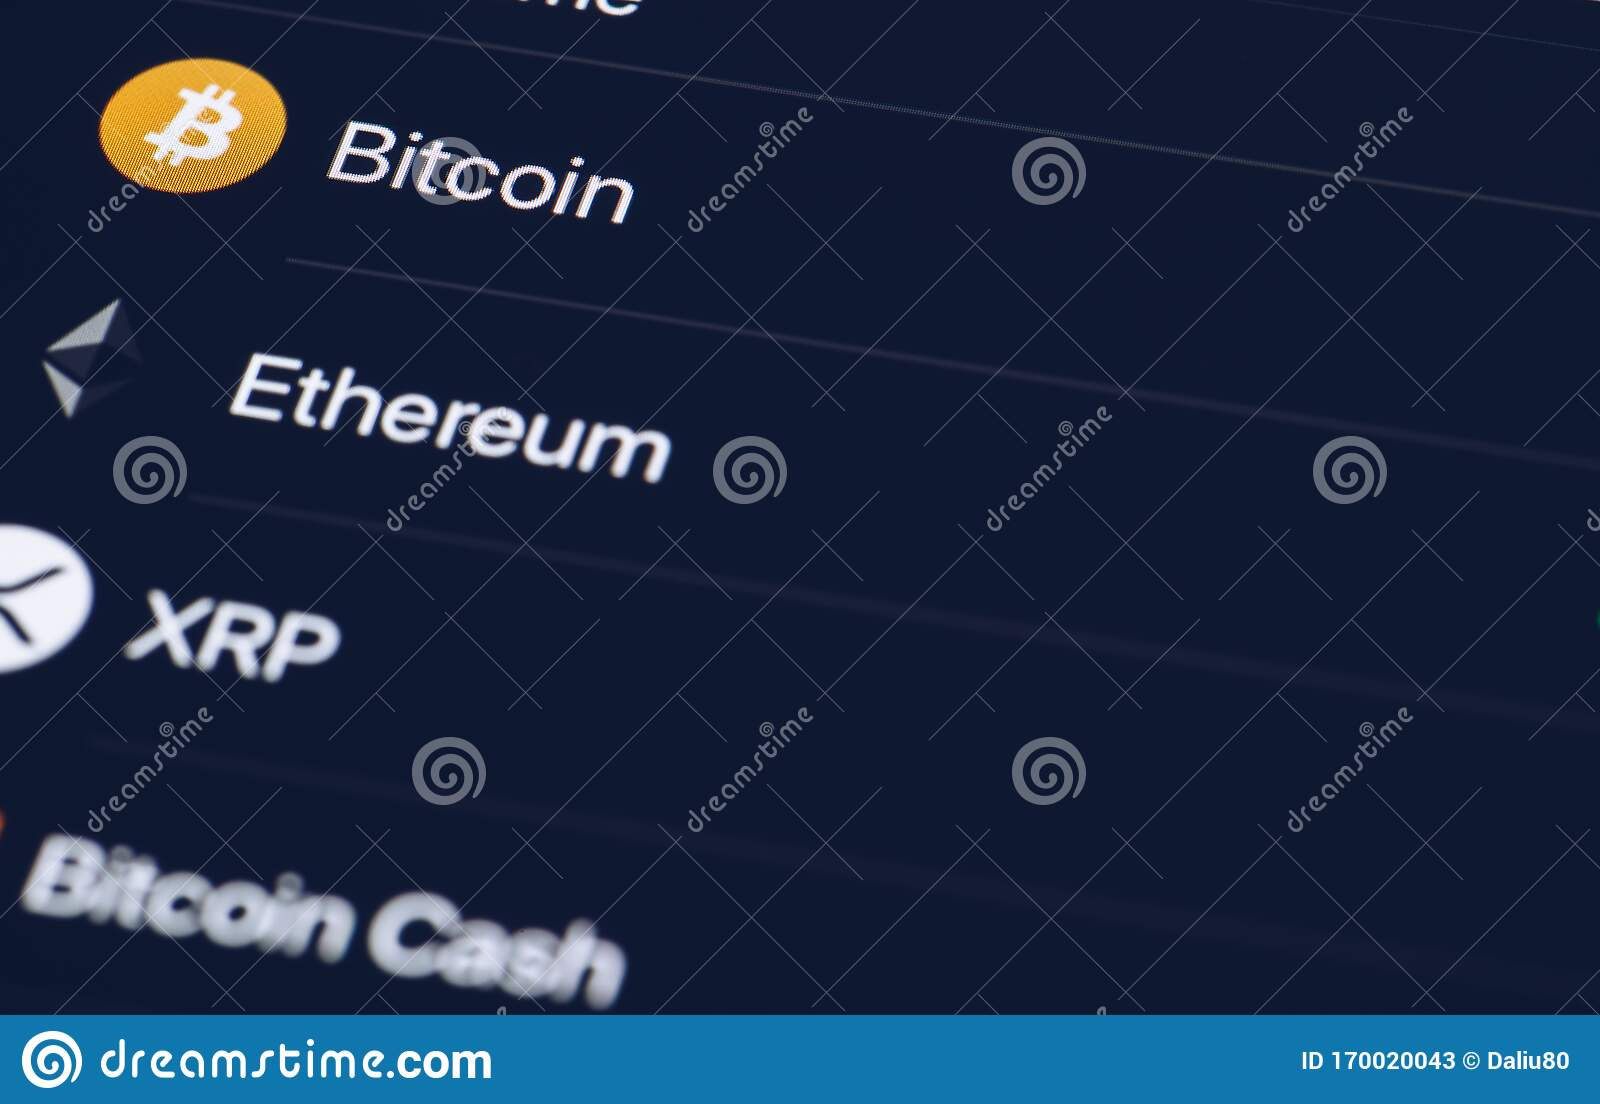 what are the best cryptocurrency stocks